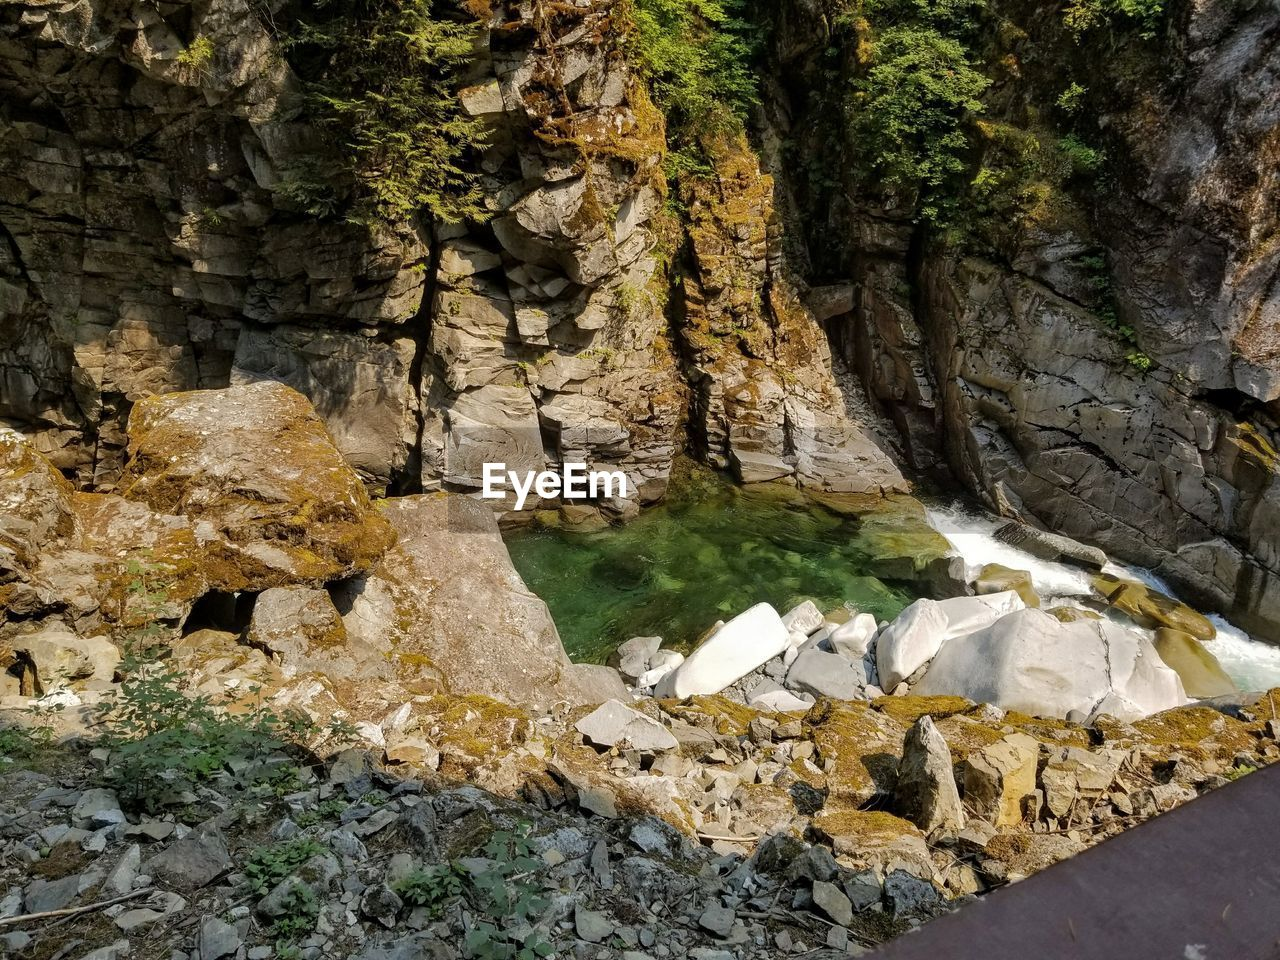 rock, rock - object, solid, nature, day, no people, beauty in nature, water, tree, outdoors, textured, land, rock formation, plant, geology, river, tranquility, close-up, rough, flowing water